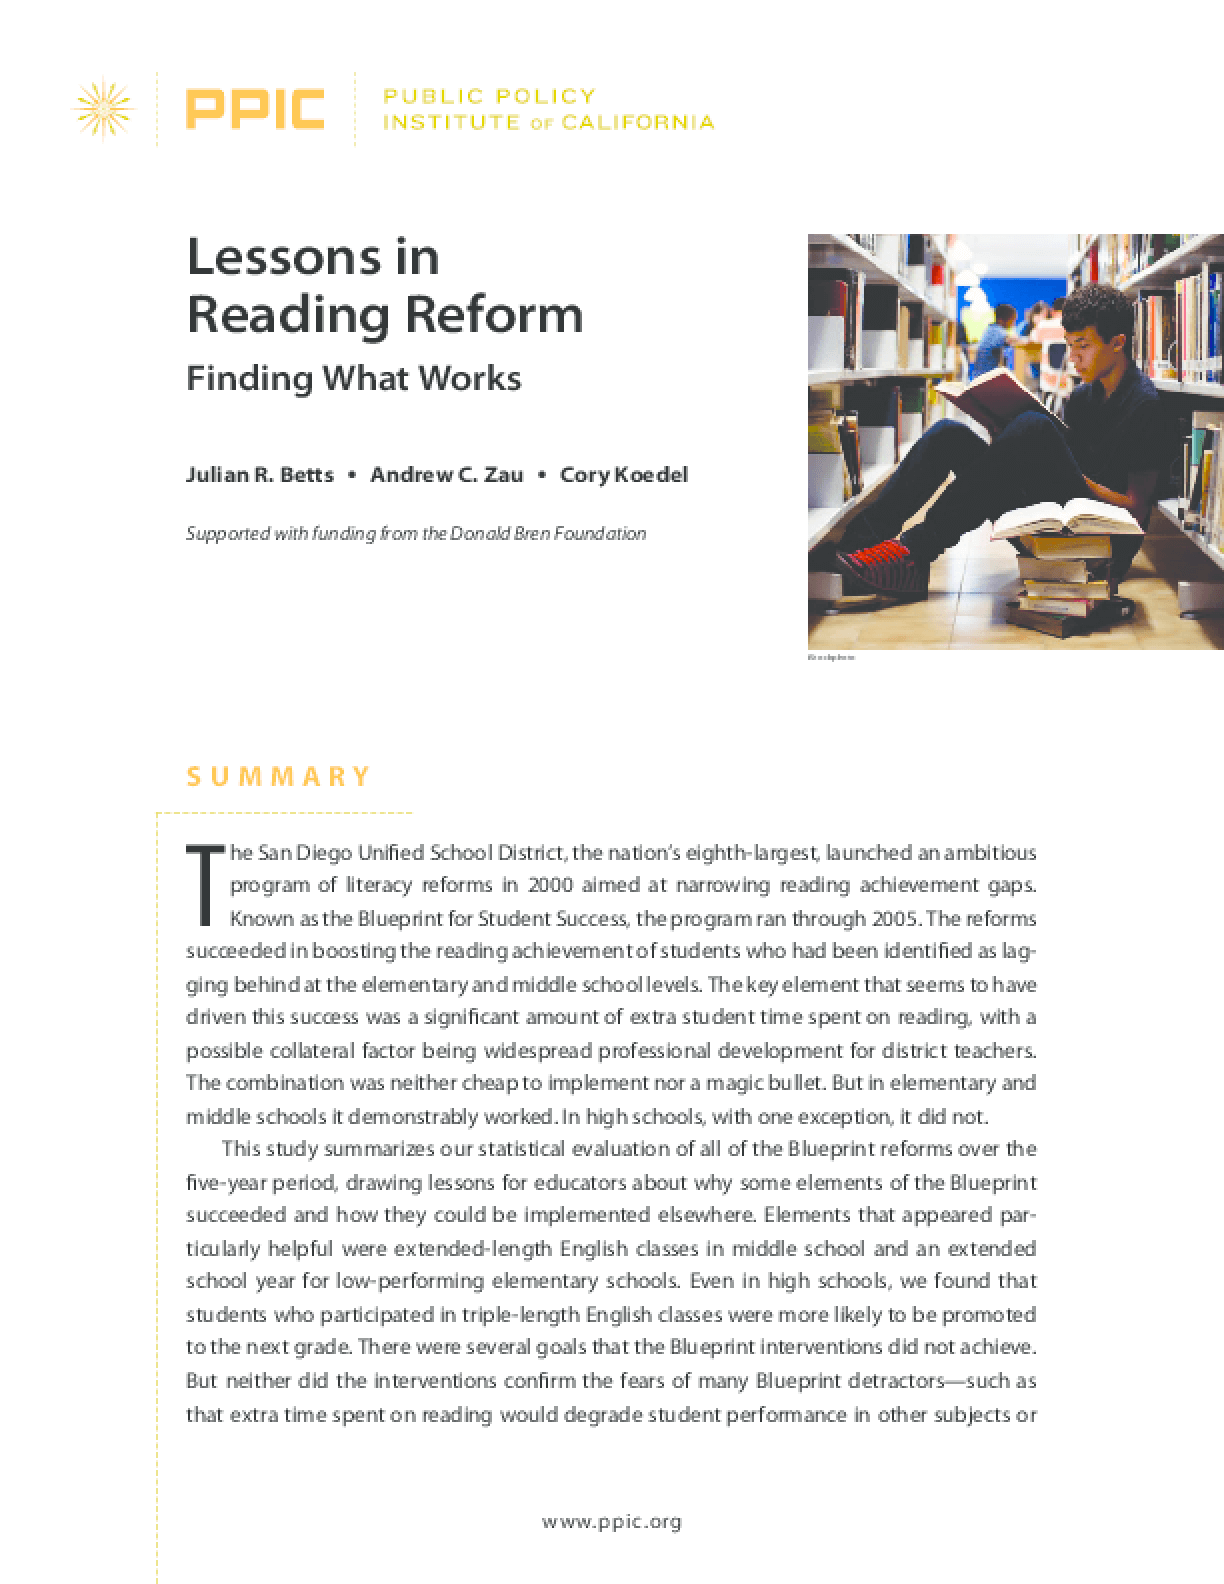 Lessons in Reading Reform: Finding What Works